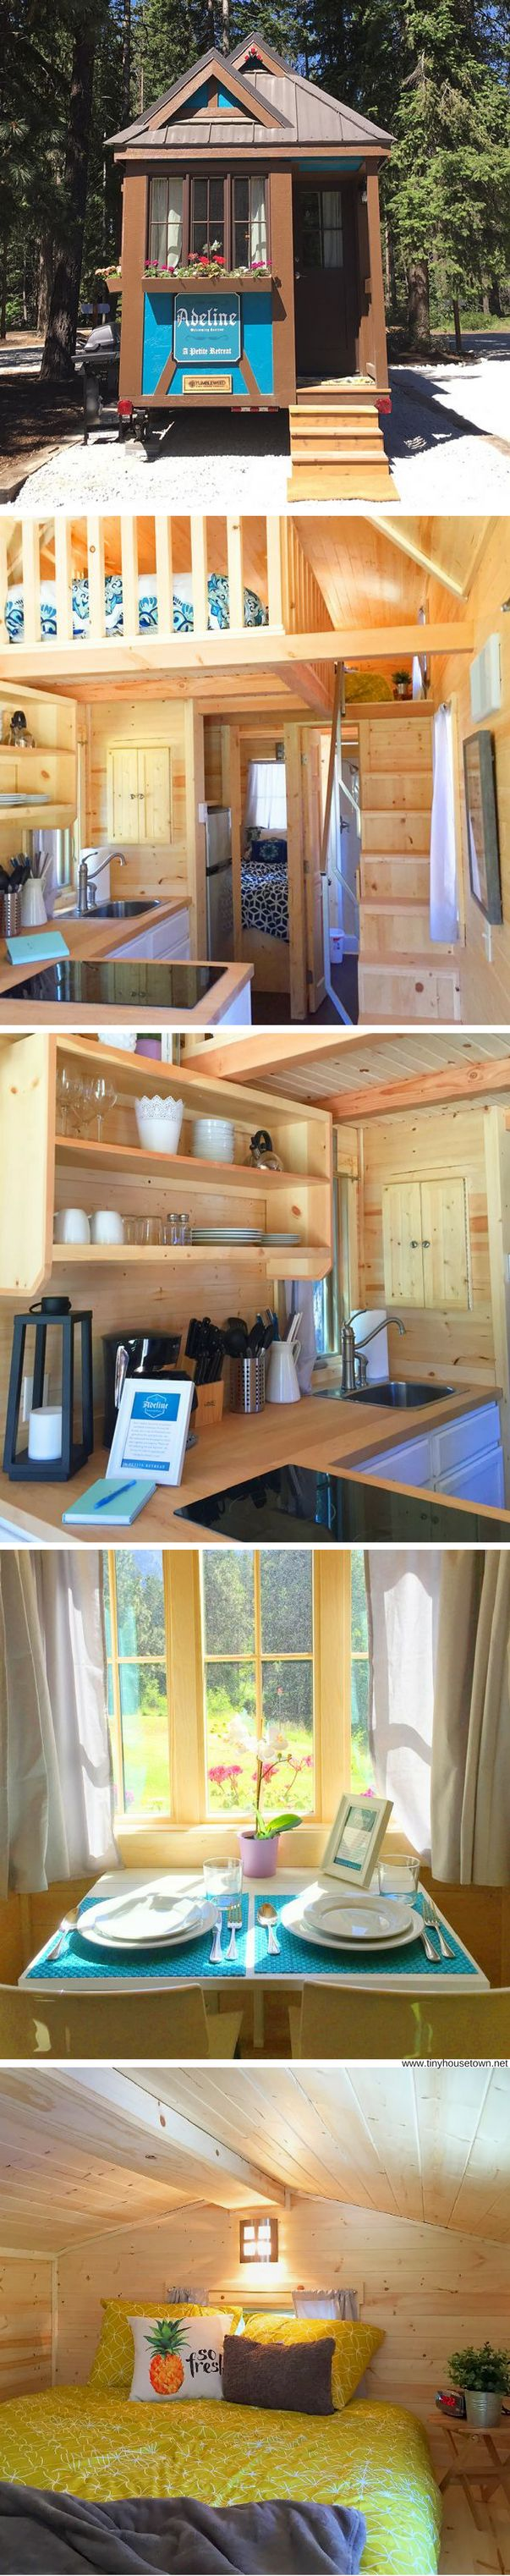 Adeline: a tiny house retreat at the Leavenworth RV Resort